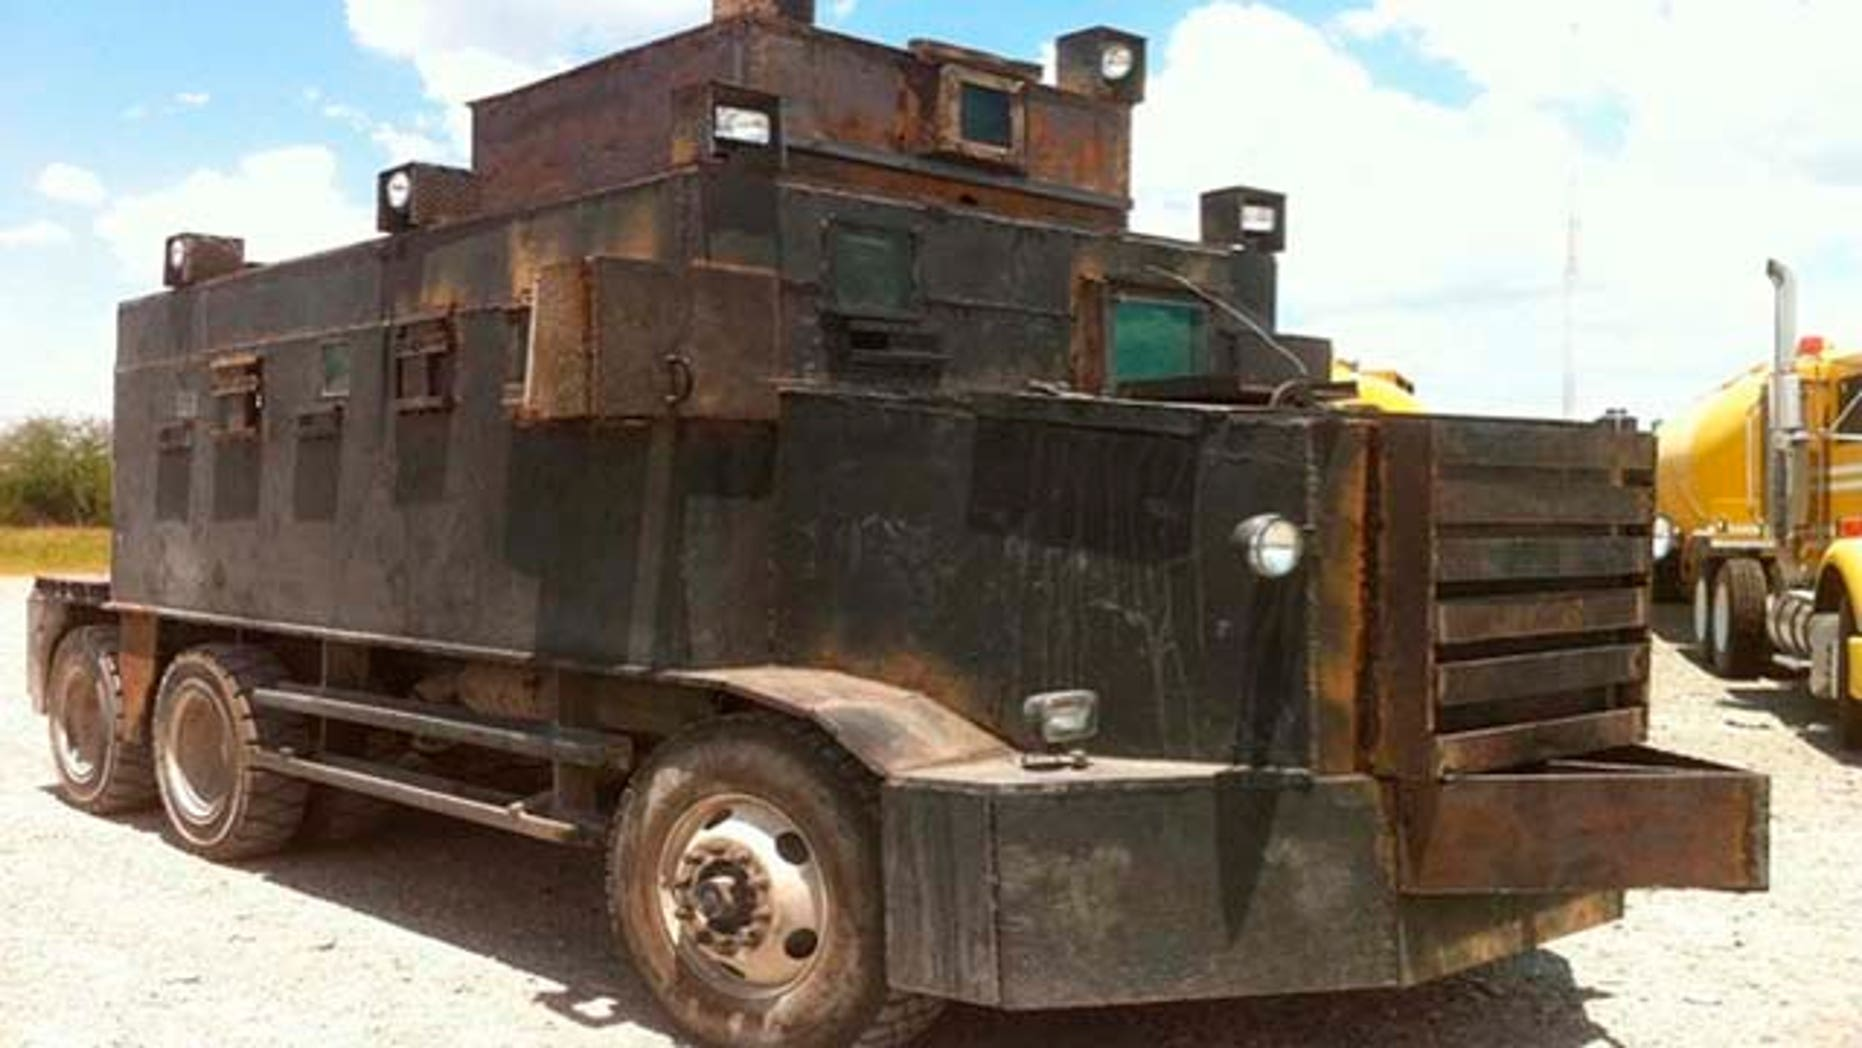 June 5: In this image released by Mexico's Defense Department, a makeshift armored truck is displayed after it was seized on June 4 in the city of Camargo, Mexico. (AP Photo/SEDENA)